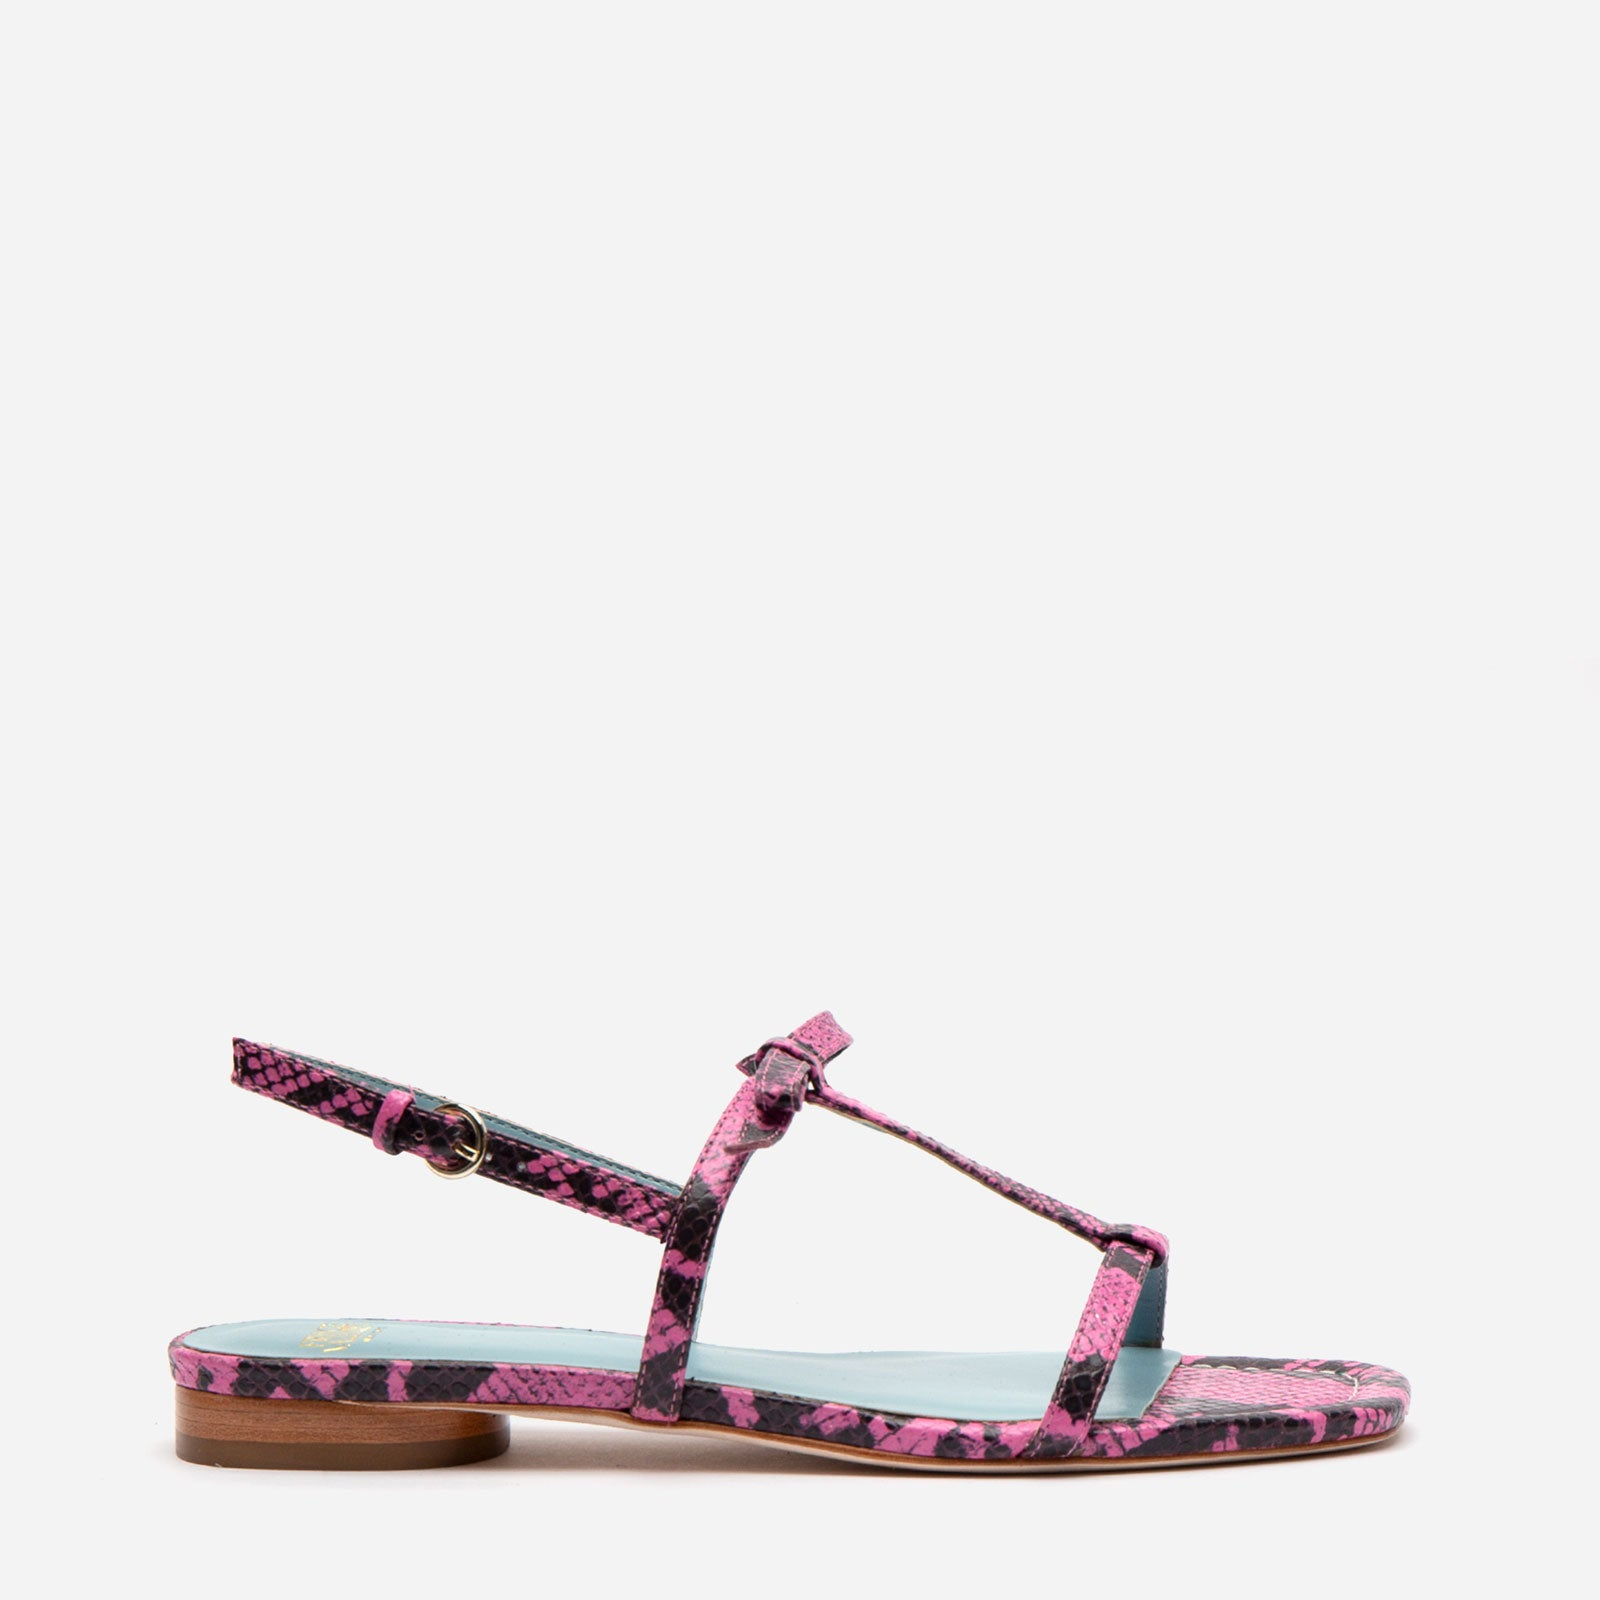 Lily Snake Embossed Leather Sandal Pink - Frances Valentine